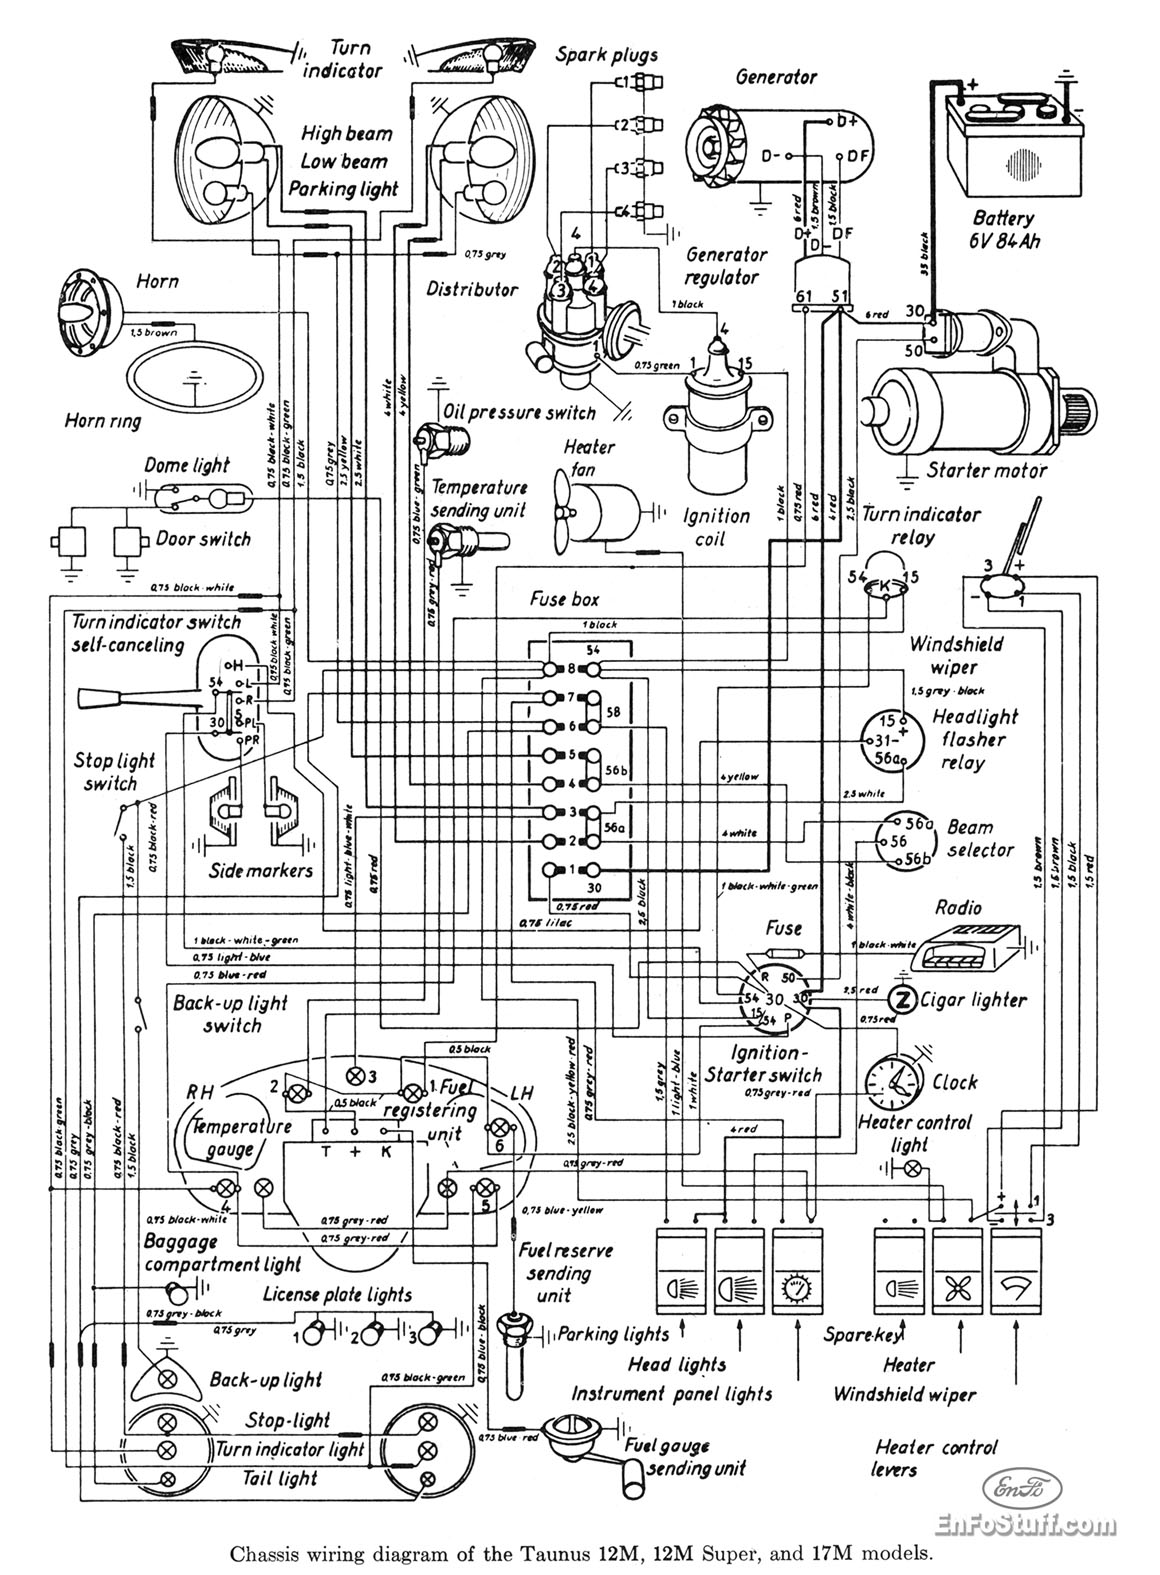 Saturn L200 Fuel Pump Wiring Diagram Library Furthermore 2009 Outlook Fuse Box On 2003 Vue Ground Devanshu U0026 39 S Blog 1966 Chevrolet Impala Ss Ole Ye Er